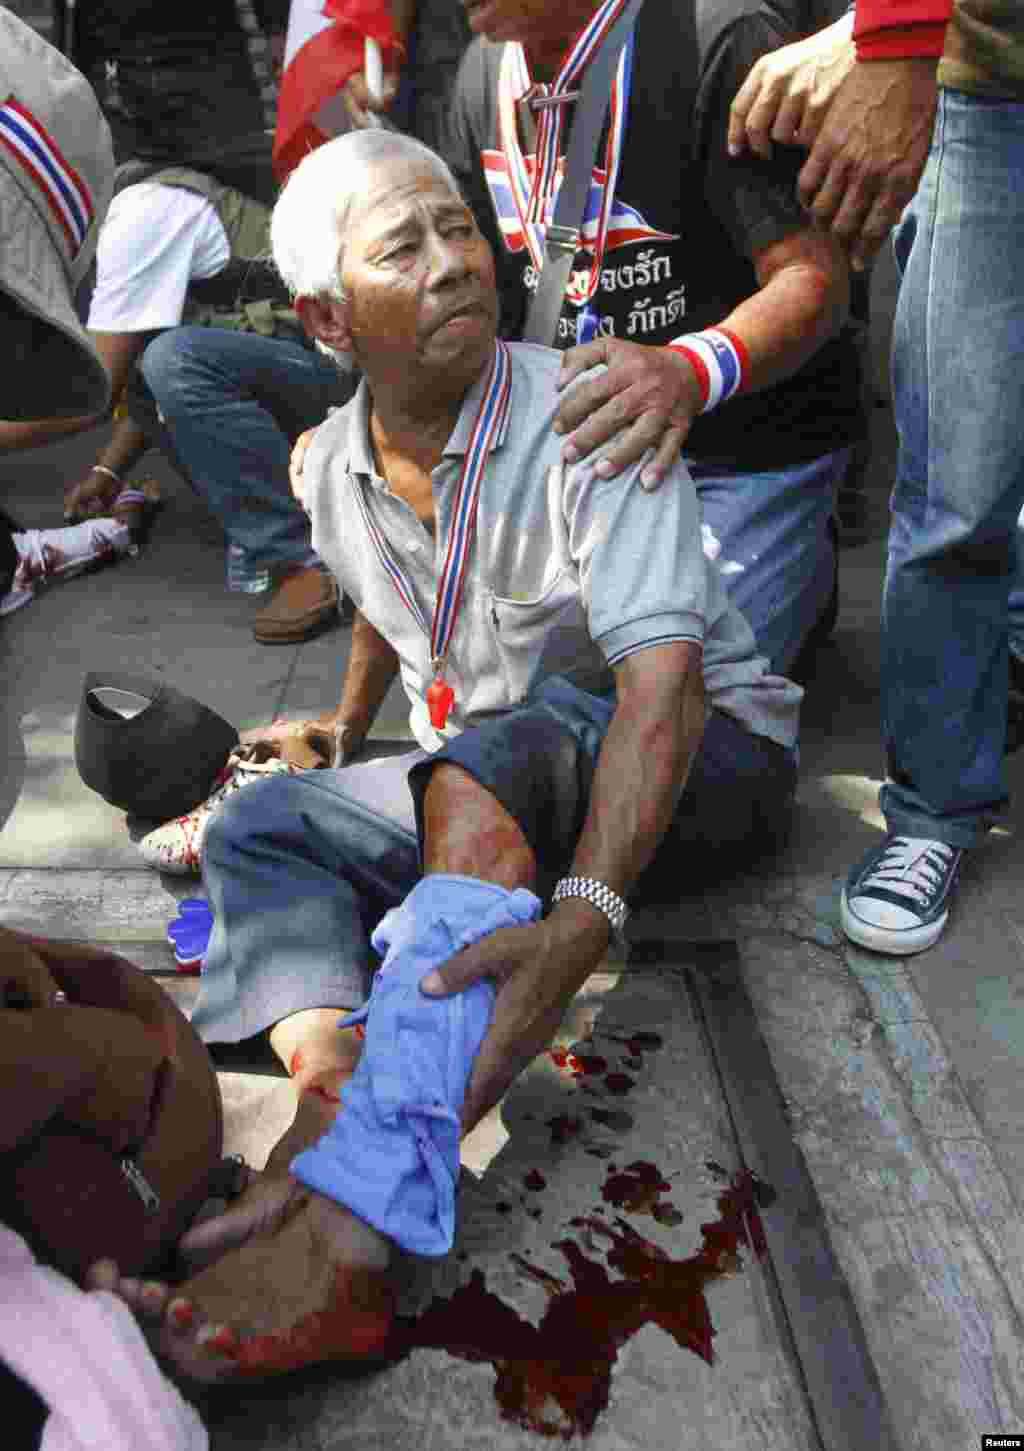 Anti-government protesters help a fellow protester injured in a grenade attack during a rally in Bangkok, Jan. 17, 2014.